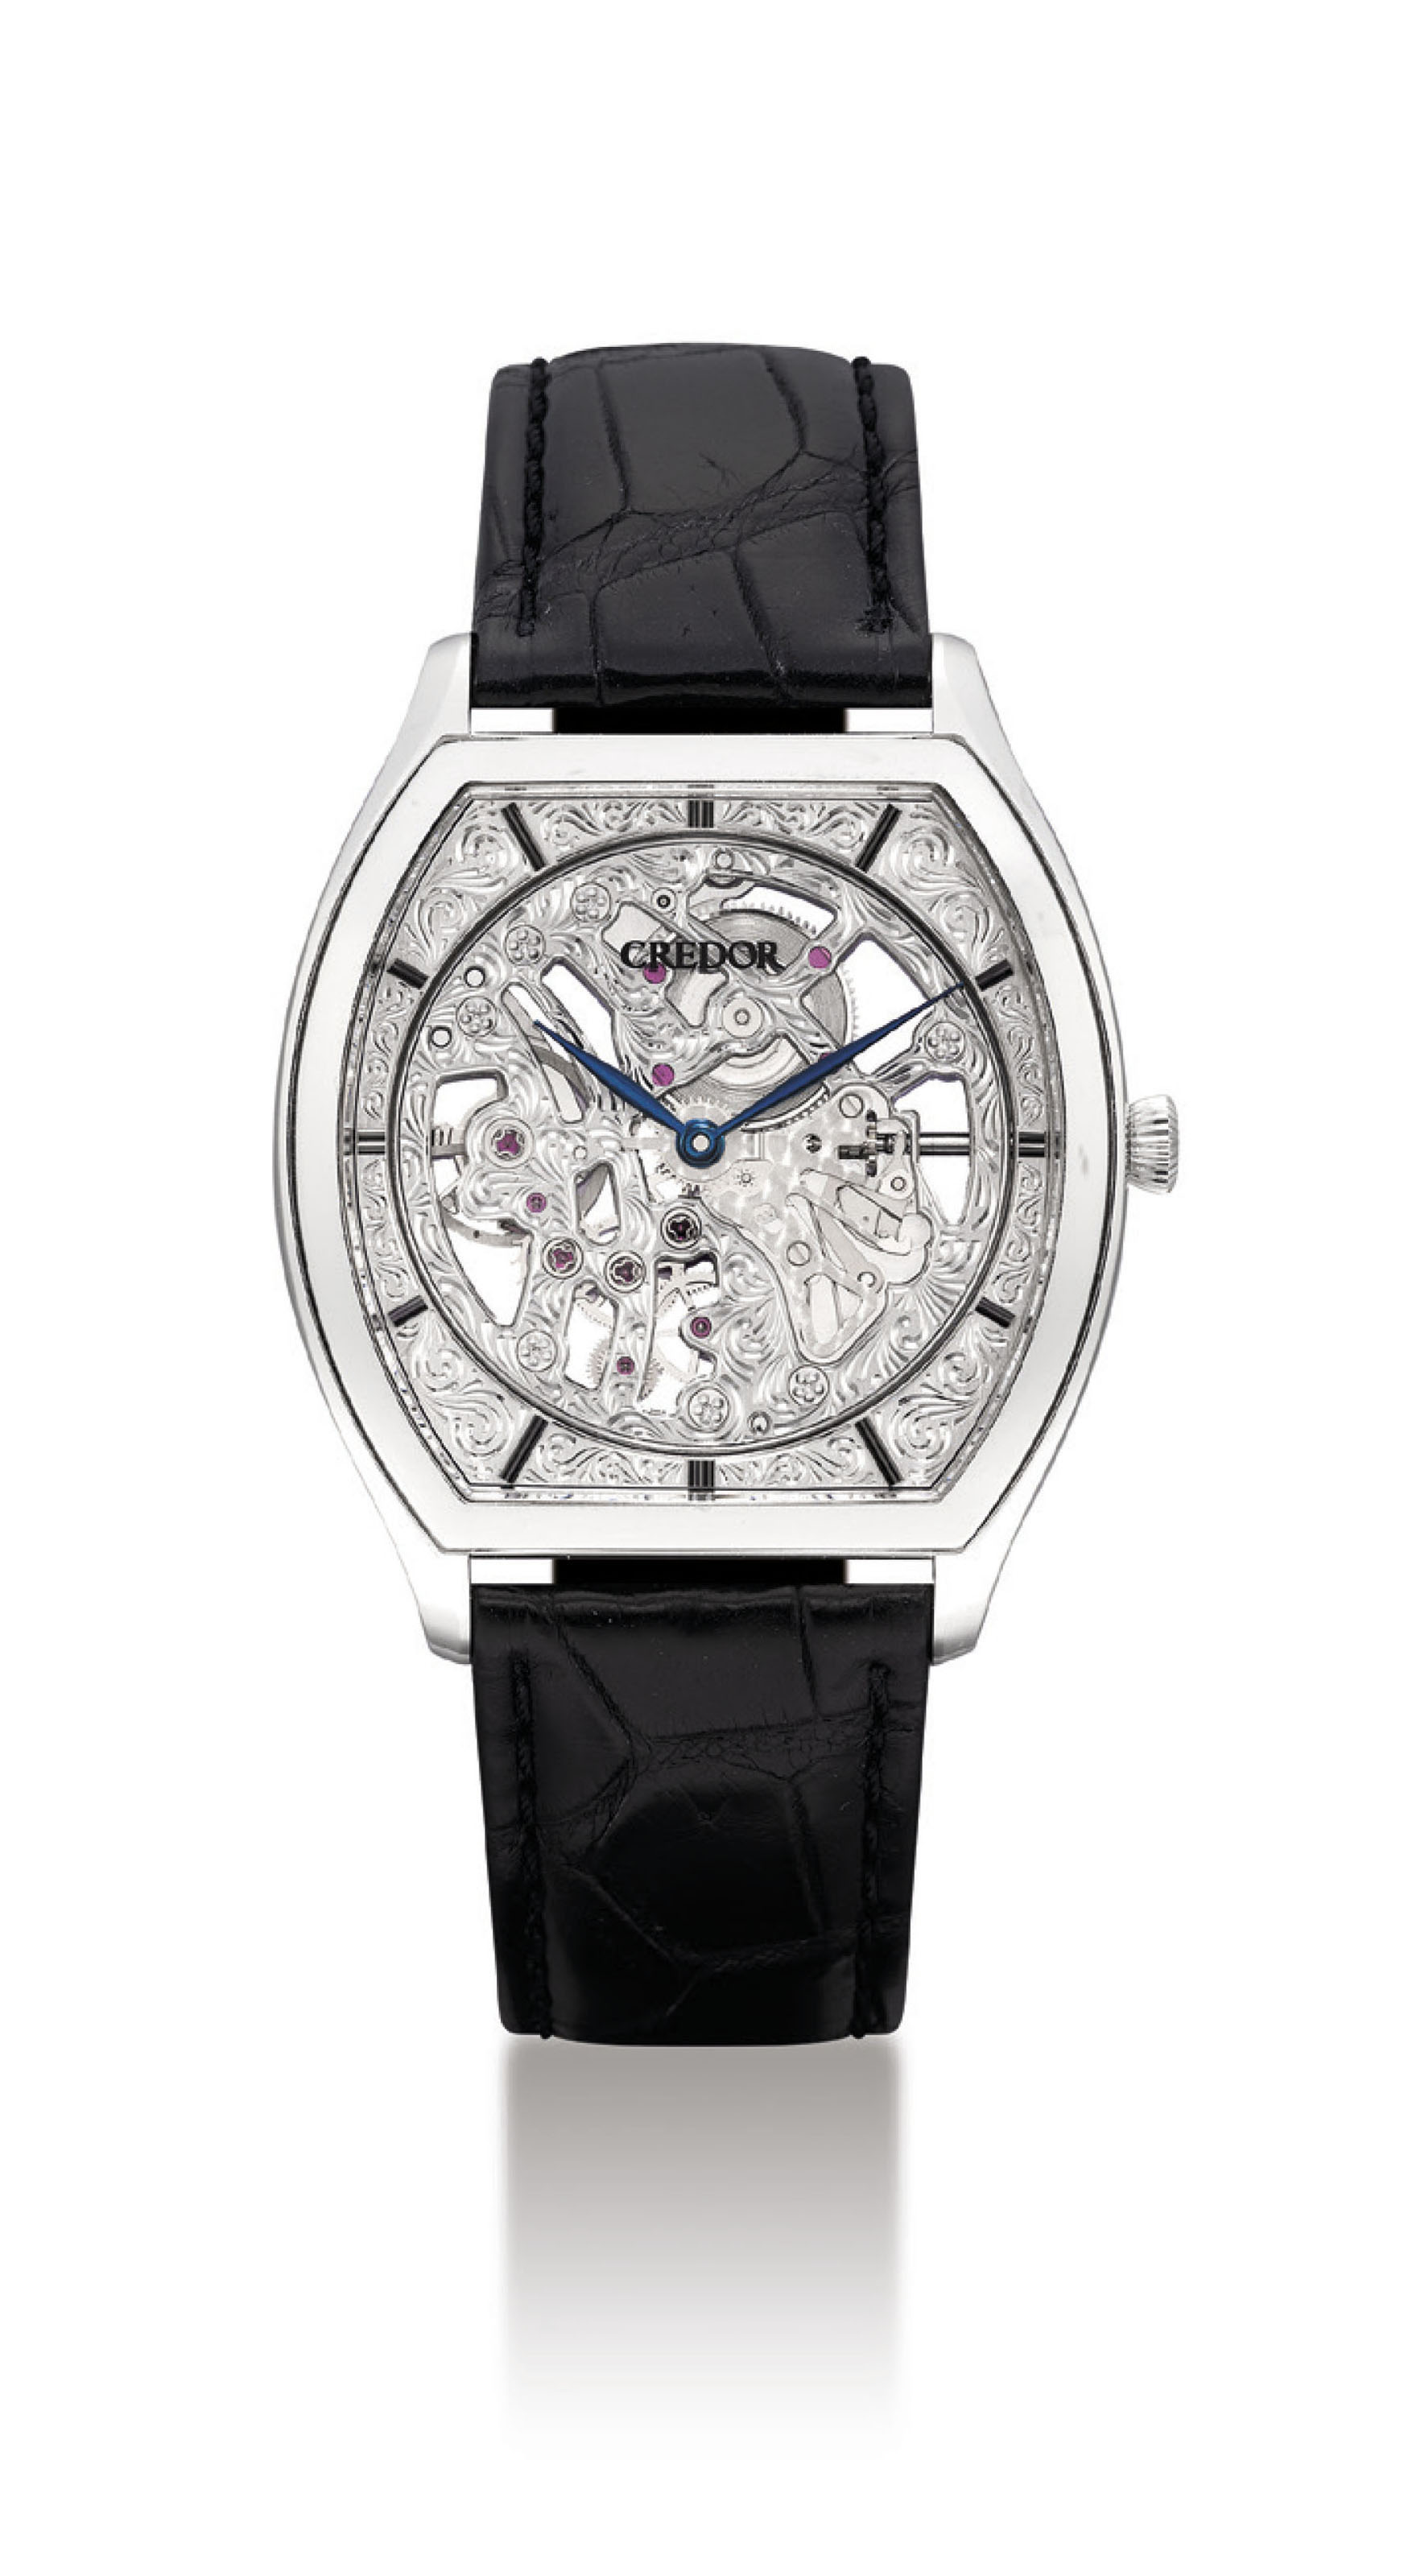 CREDOR. A FINE PLATINUM SKELETONISED TONNEAU-SHAPED WRISTWATCH